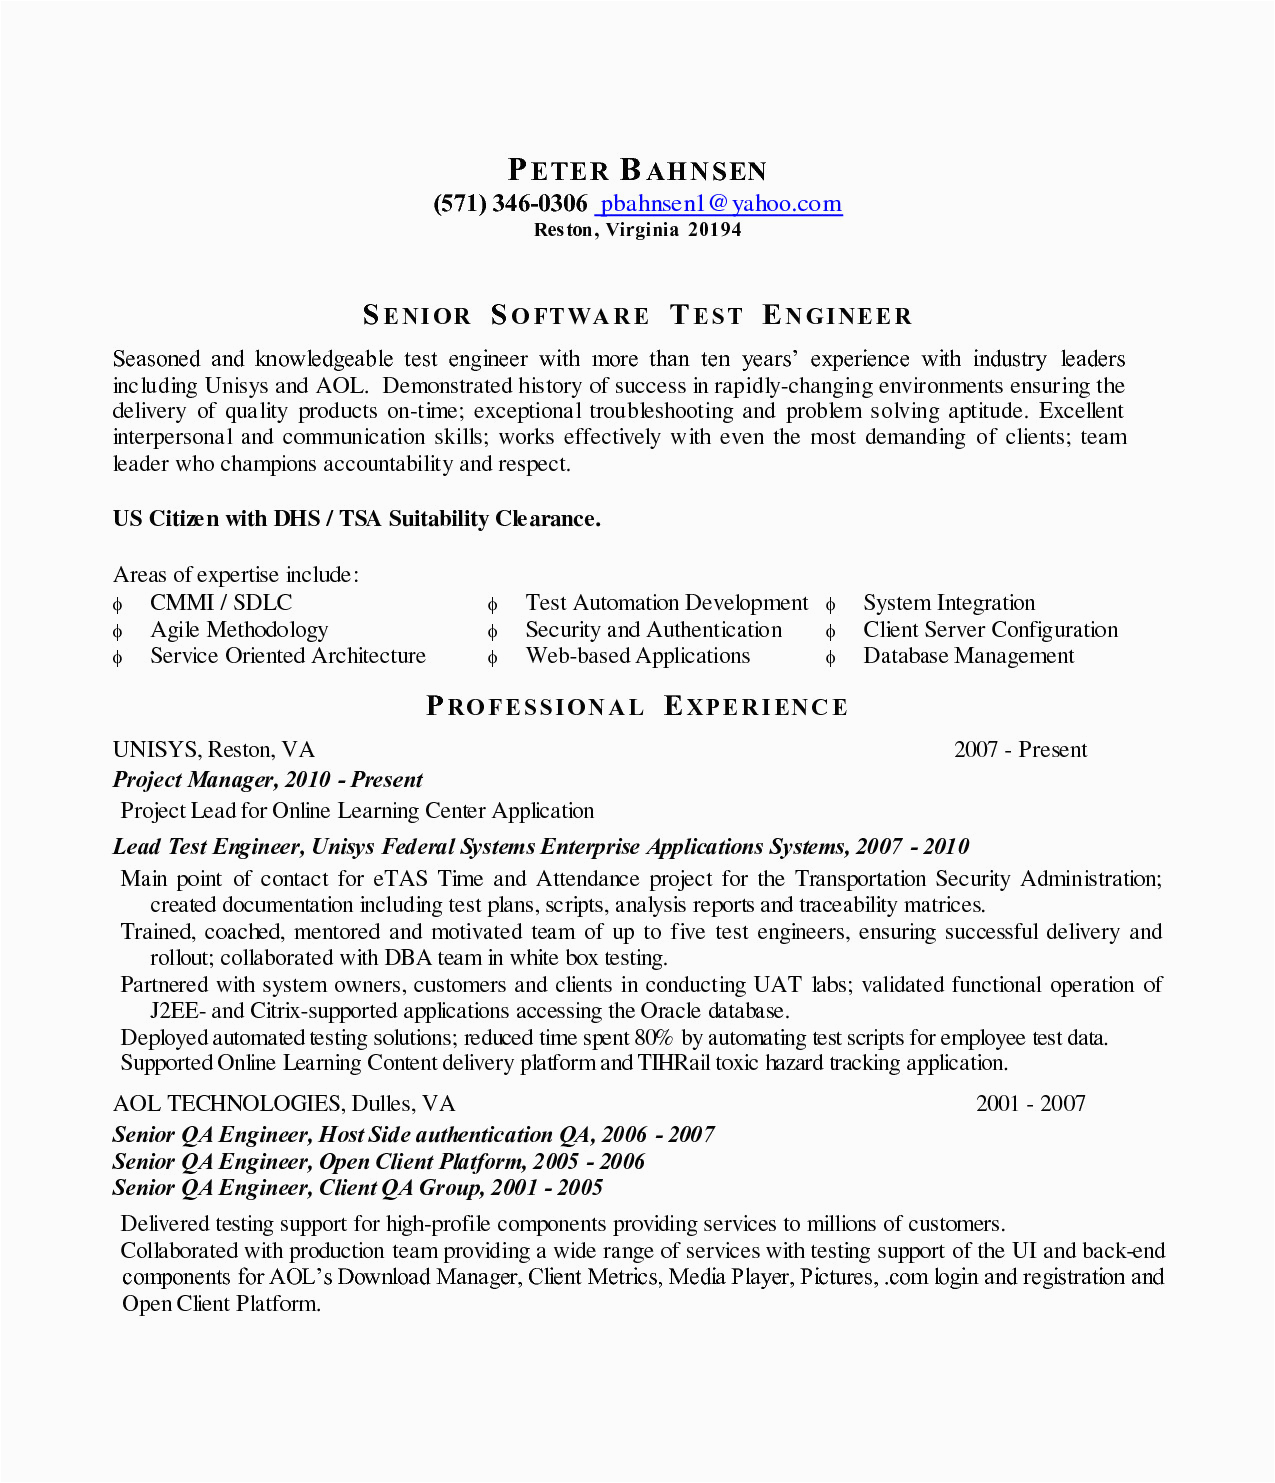 Sample Resume for Experienced software Test Engineer Download Sample Resume for software Test Engineer with Experience